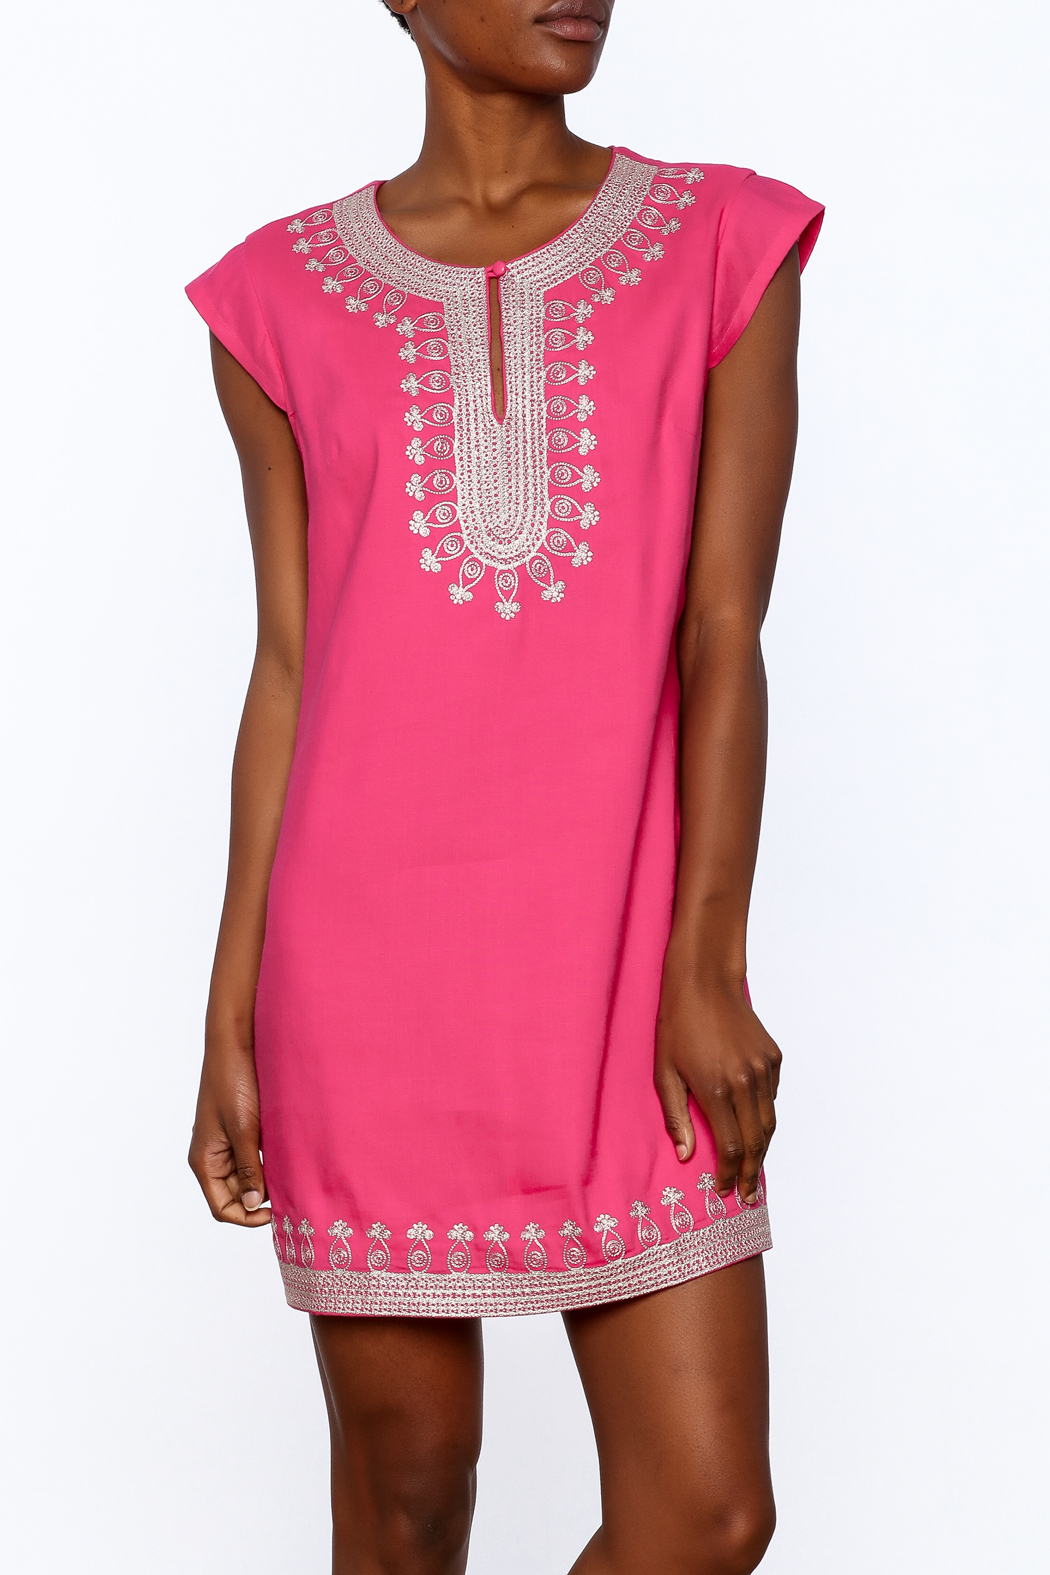 Ark & Co. Pink Tunic Dress - Main Image